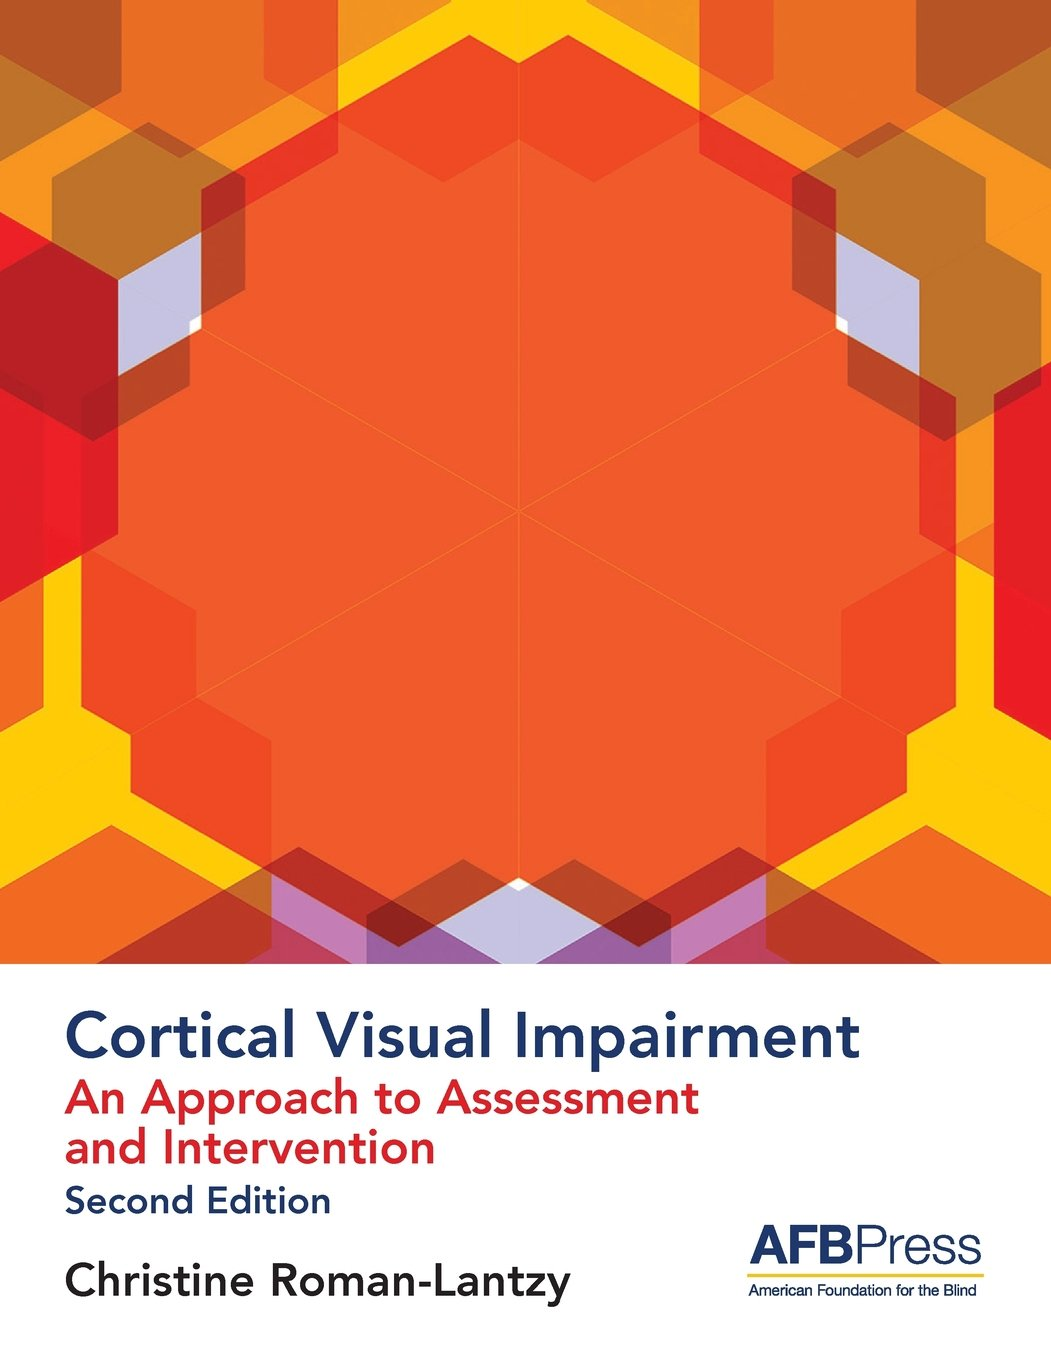 Cortical Visual Impairment: An Approach to Assessment and Intervention by American Printing House for the Blind